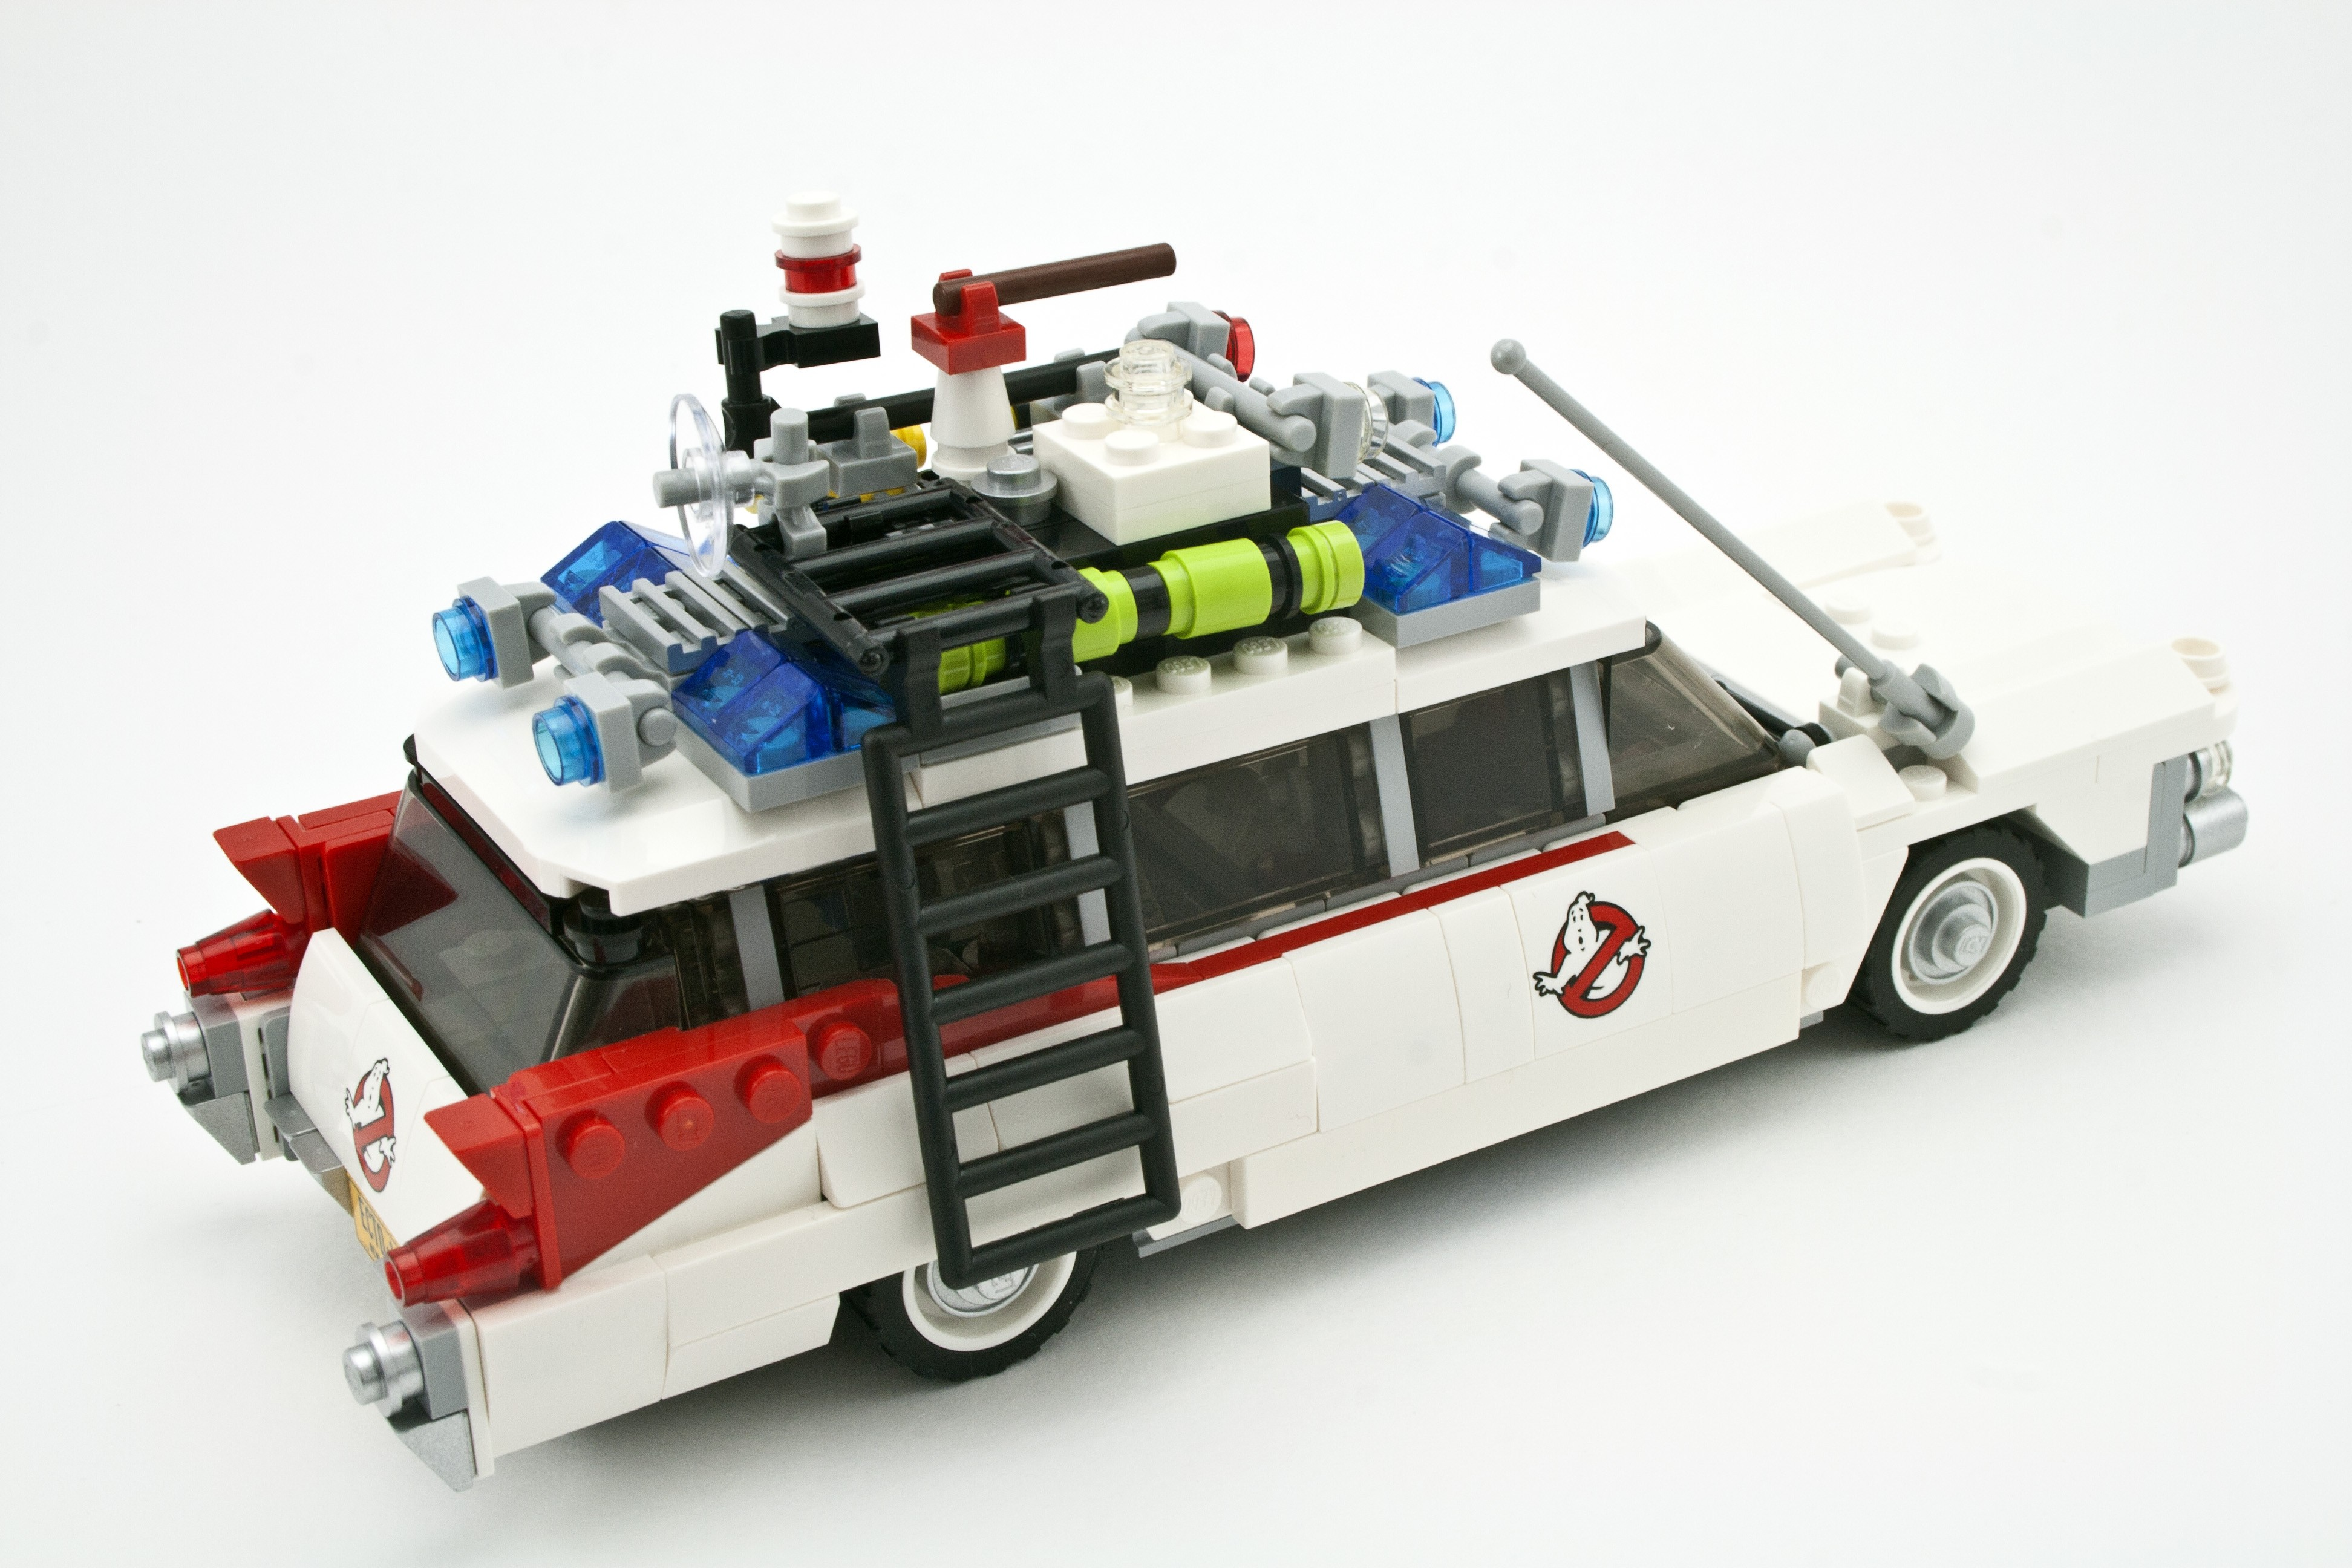 ecto 1 ghostbusters car ideas 21108 no minifigures the. Black Bedroom Furniture Sets. Home Design Ideas